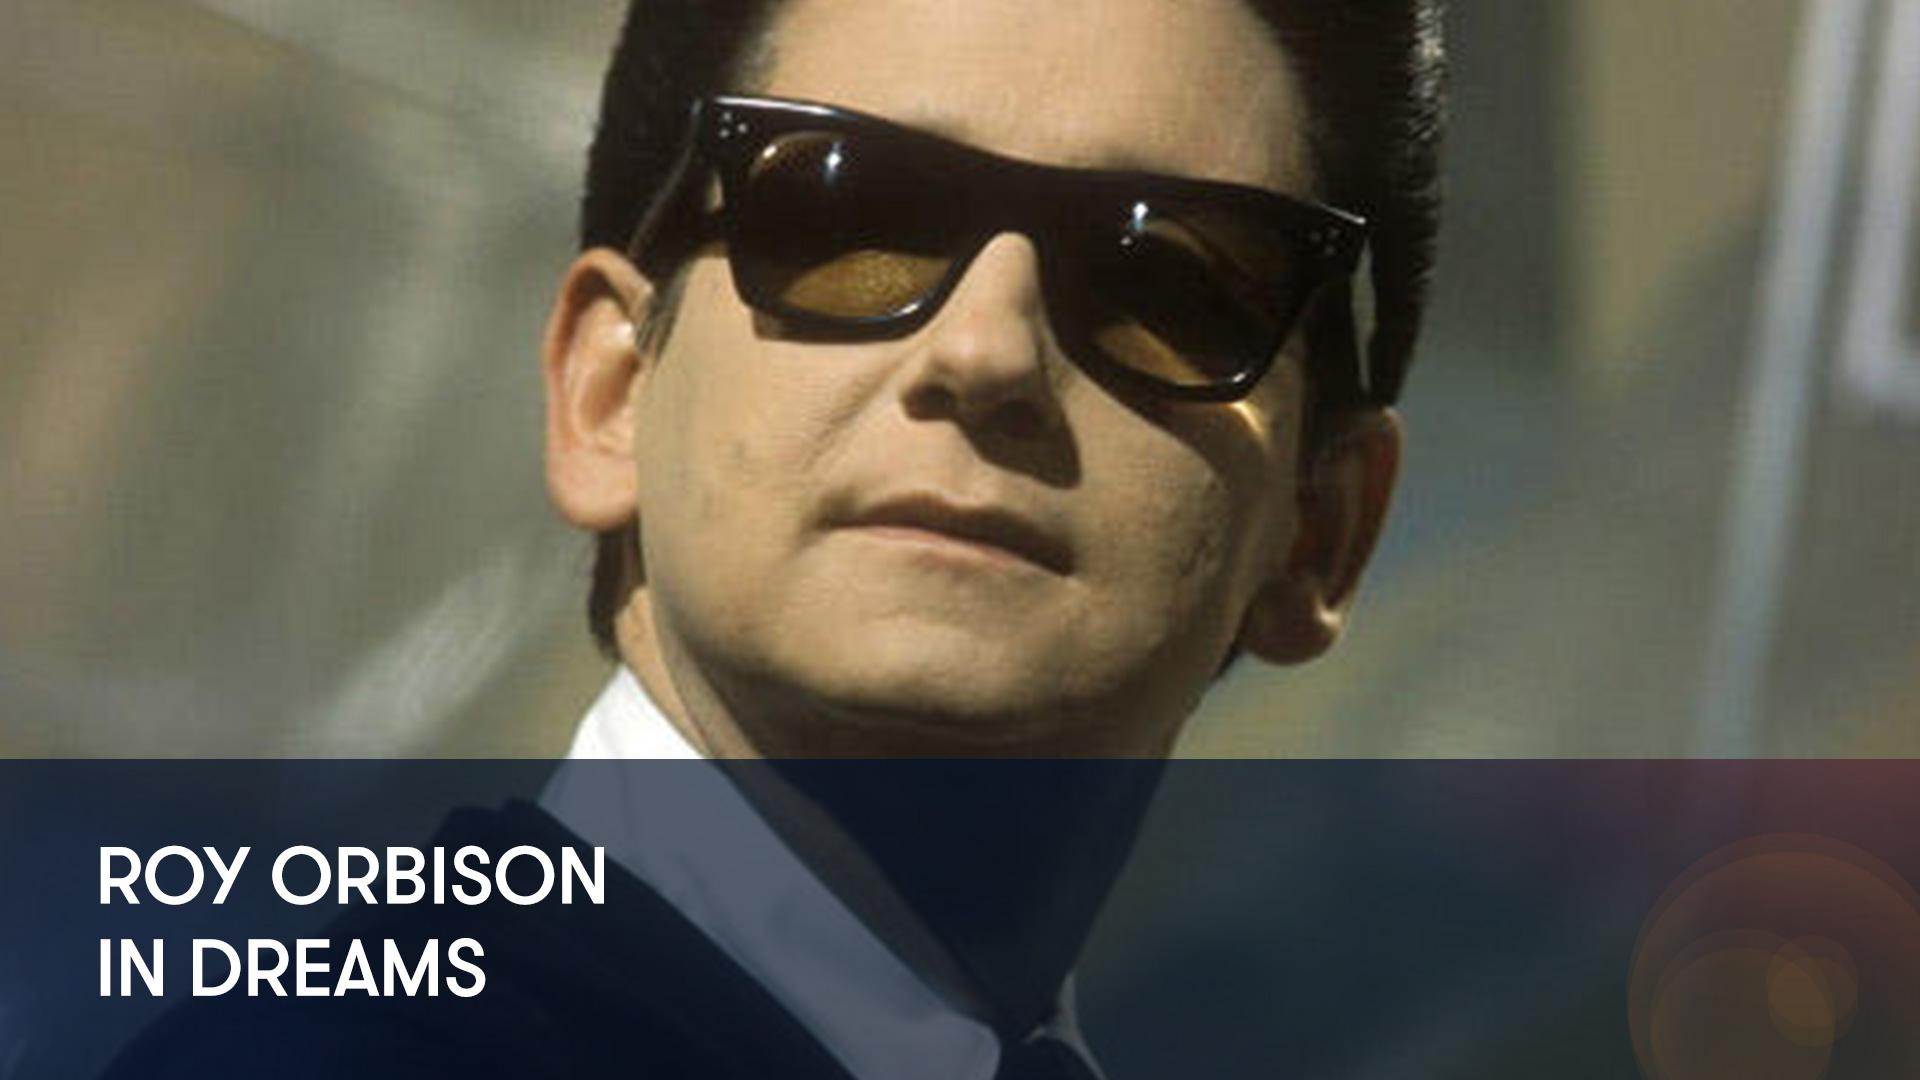 Stream And Watch Roy Orbison In Dreams Online Sling Tv